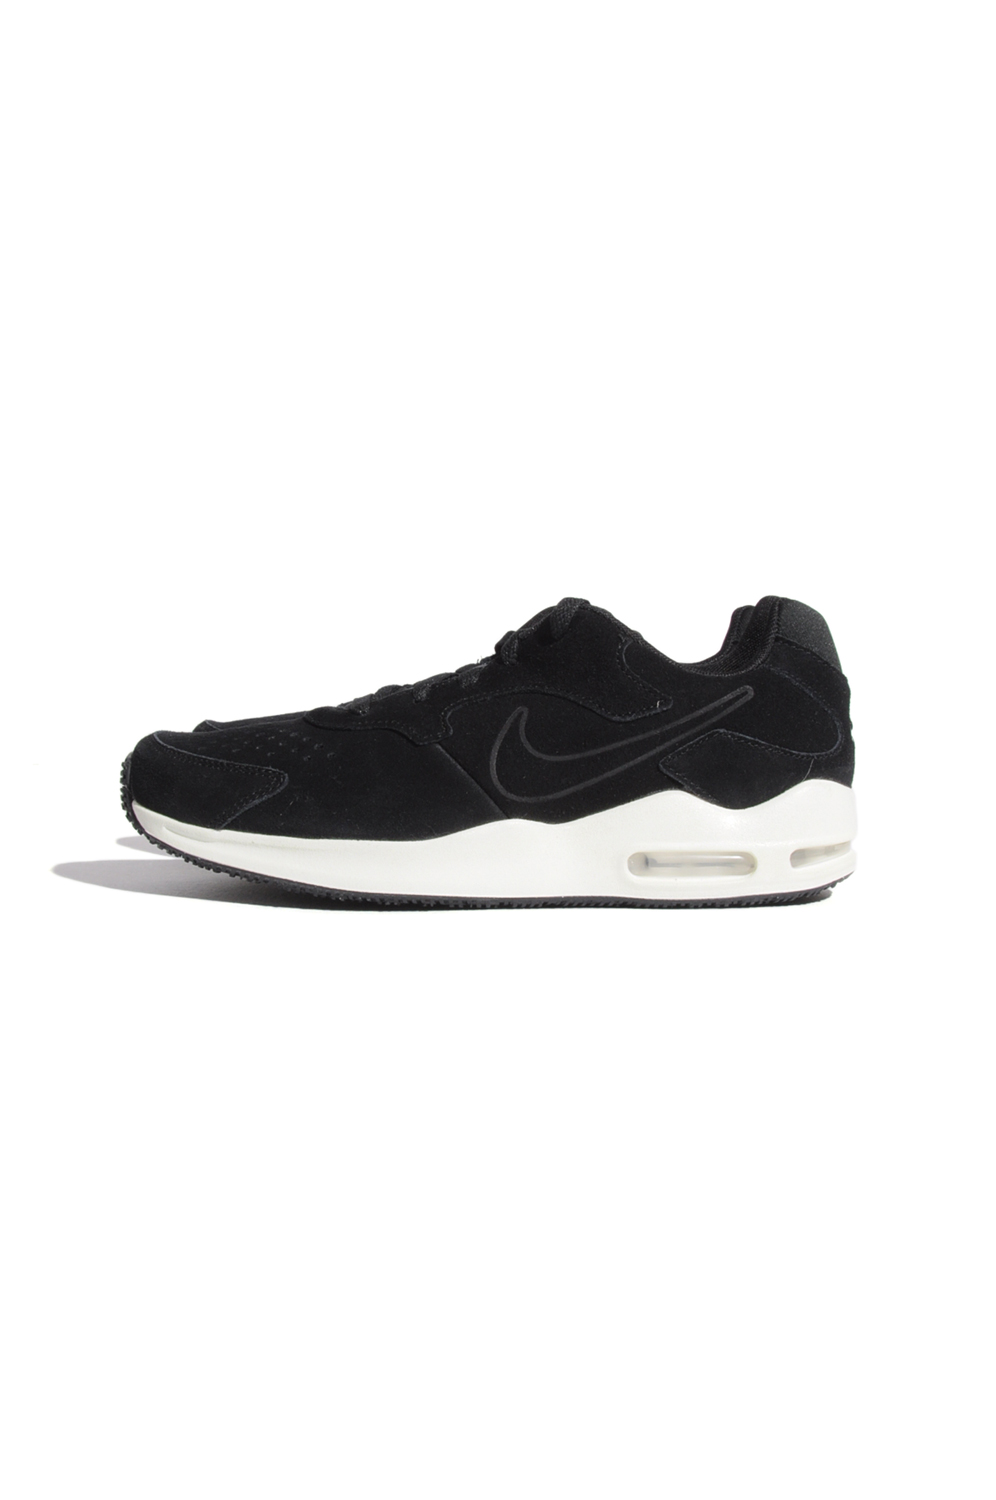 画像3: 【NIKE】AIR MAX GUILE PREM